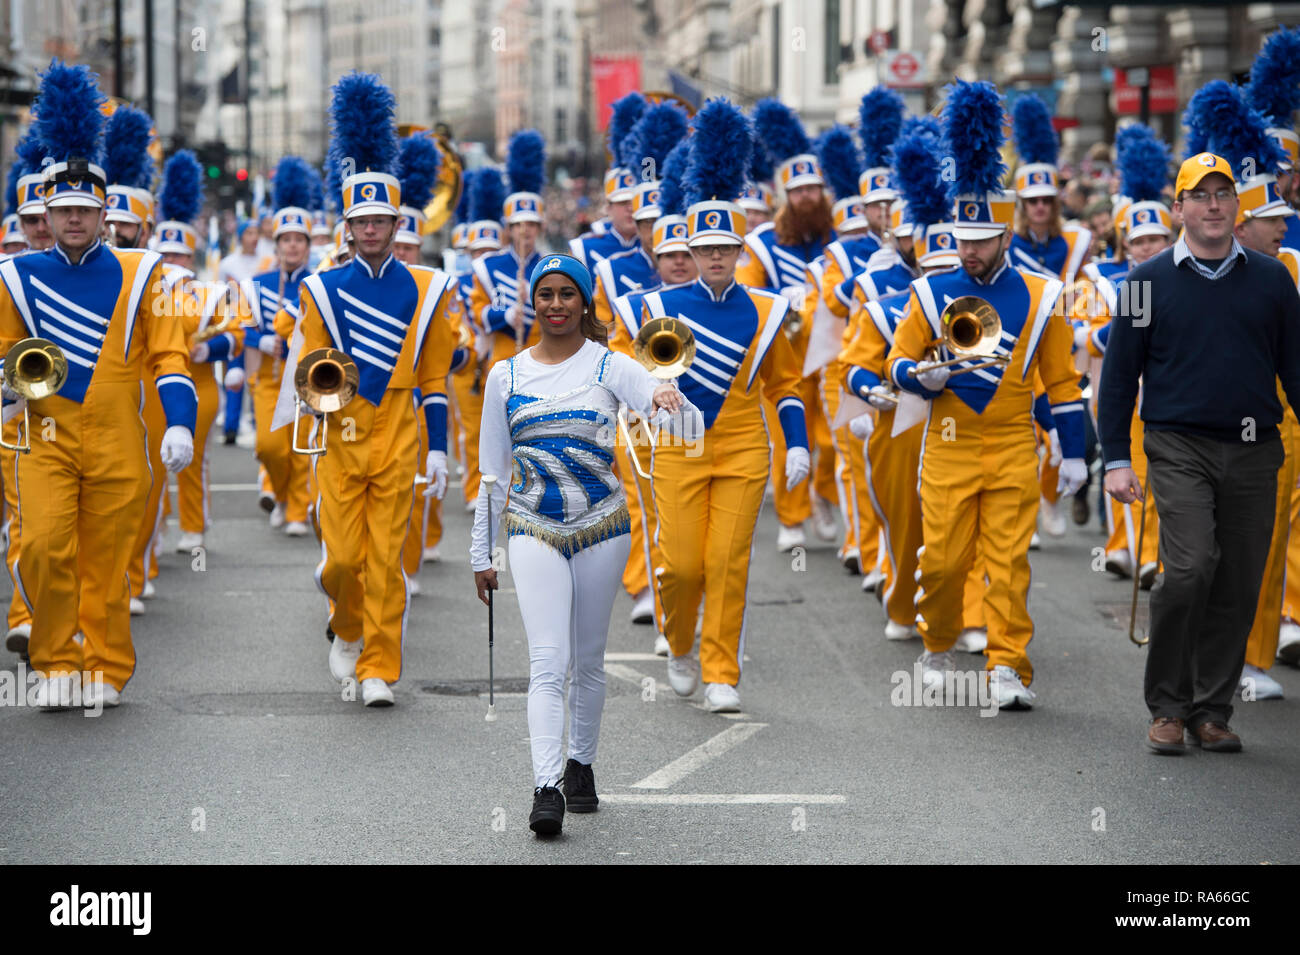 Westminster, London, UK. 1 January 2019. The annual London New Years Day Parade takes place on a route from Piccadilly to Parliament Square, watched by thousands. This years theme is London Welcomes The World. Angelo State University Ram Band from Texas, USA at the head of the parade in Piccadilly. Credit: Malcolm Park/Alamy Live News. - Stock Image